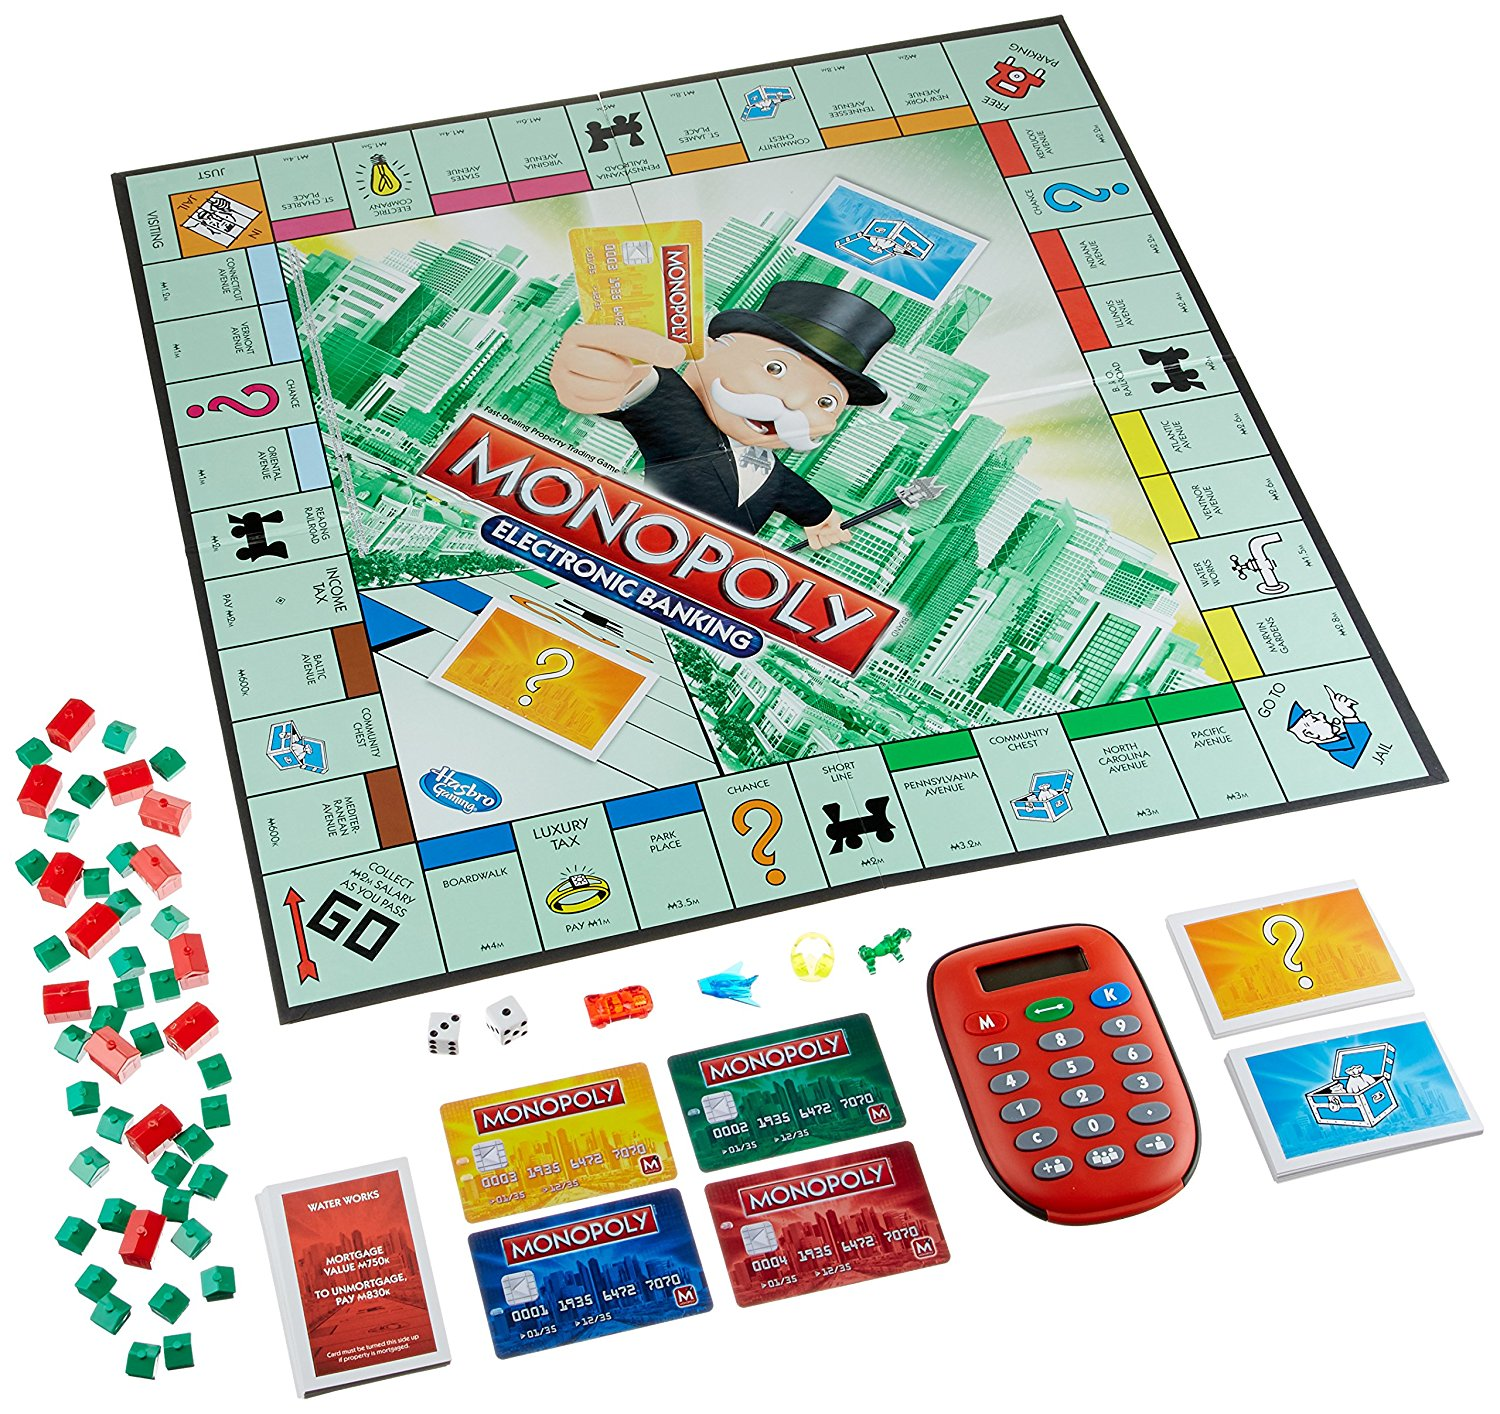 acheter monopoly edition electronic banking monopoly. Black Bedroom Furniture Sets. Home Design Ideas